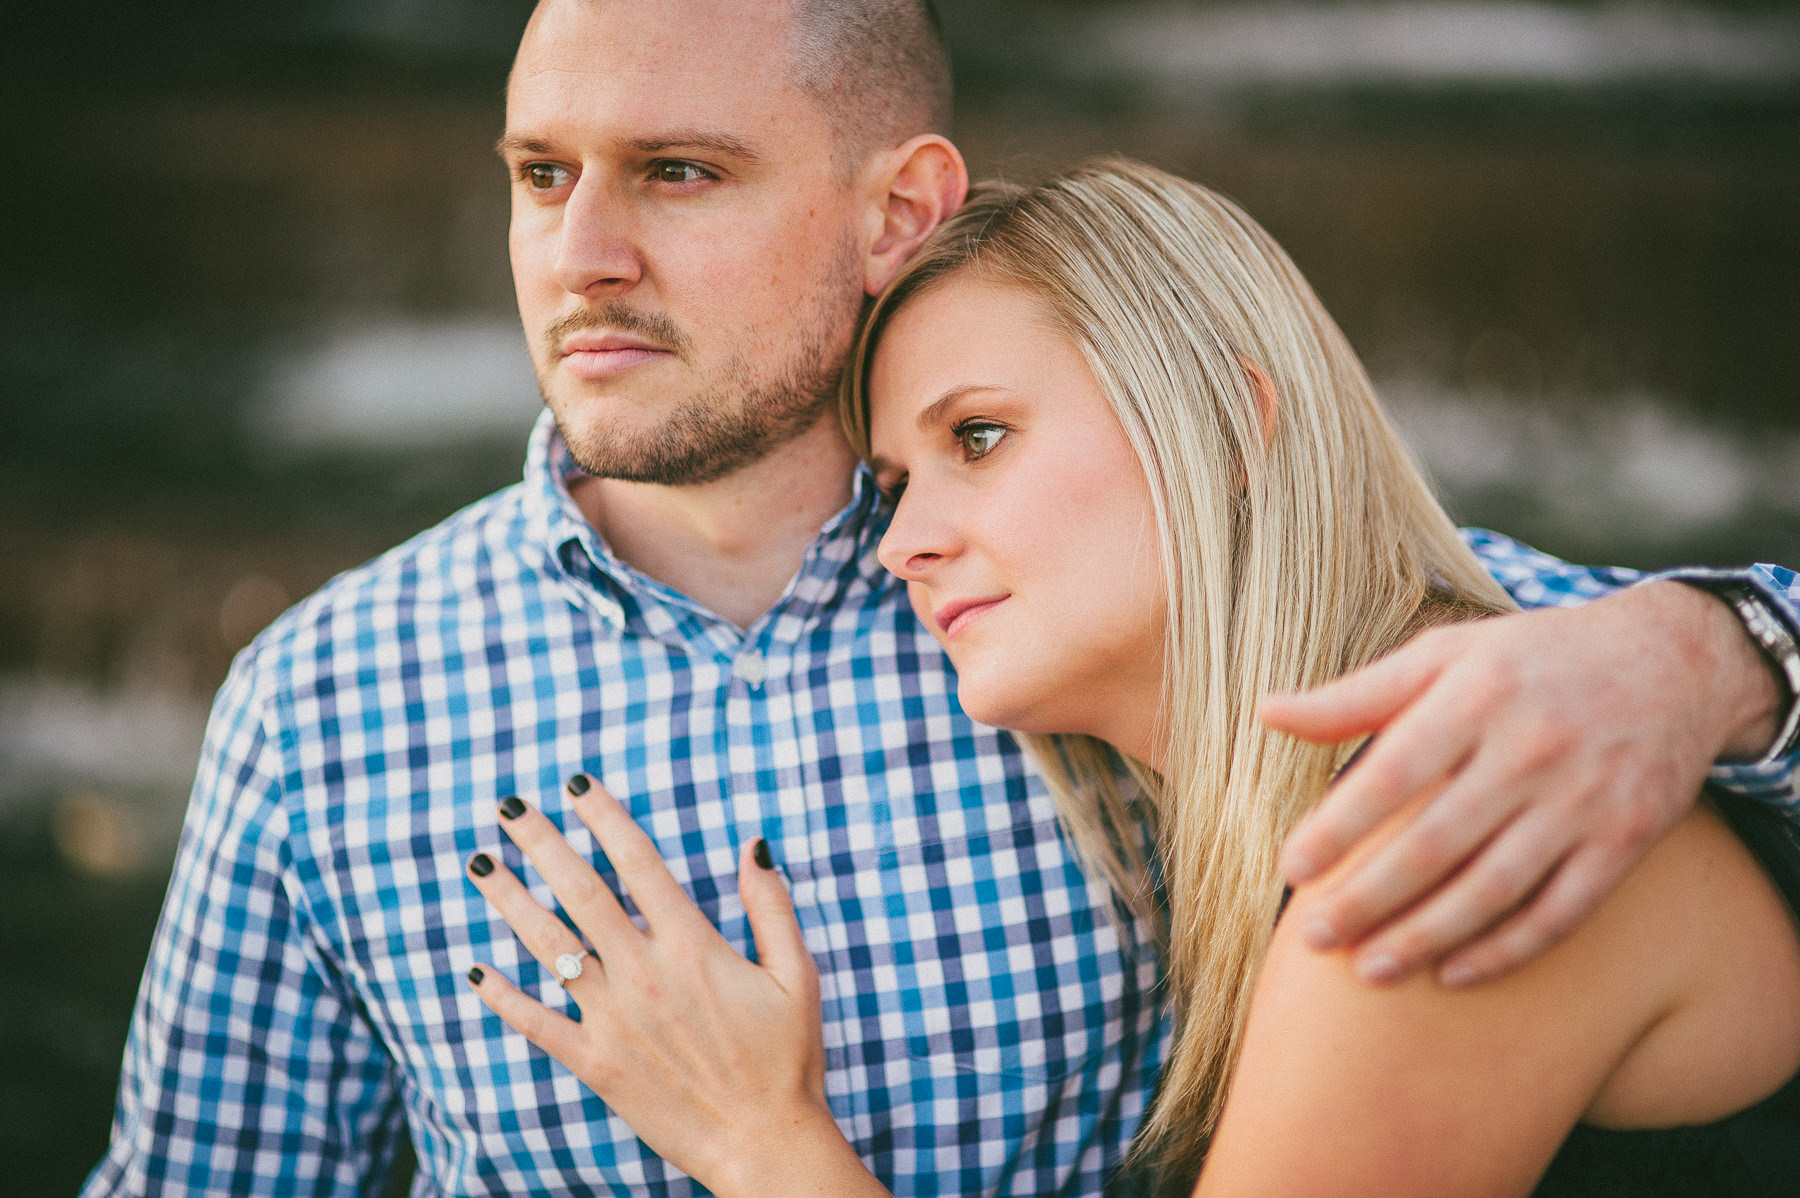 breighton-and-basette-photography-copyrighted-image-blog-anna-marie-and-steve-engagement-017.jpg